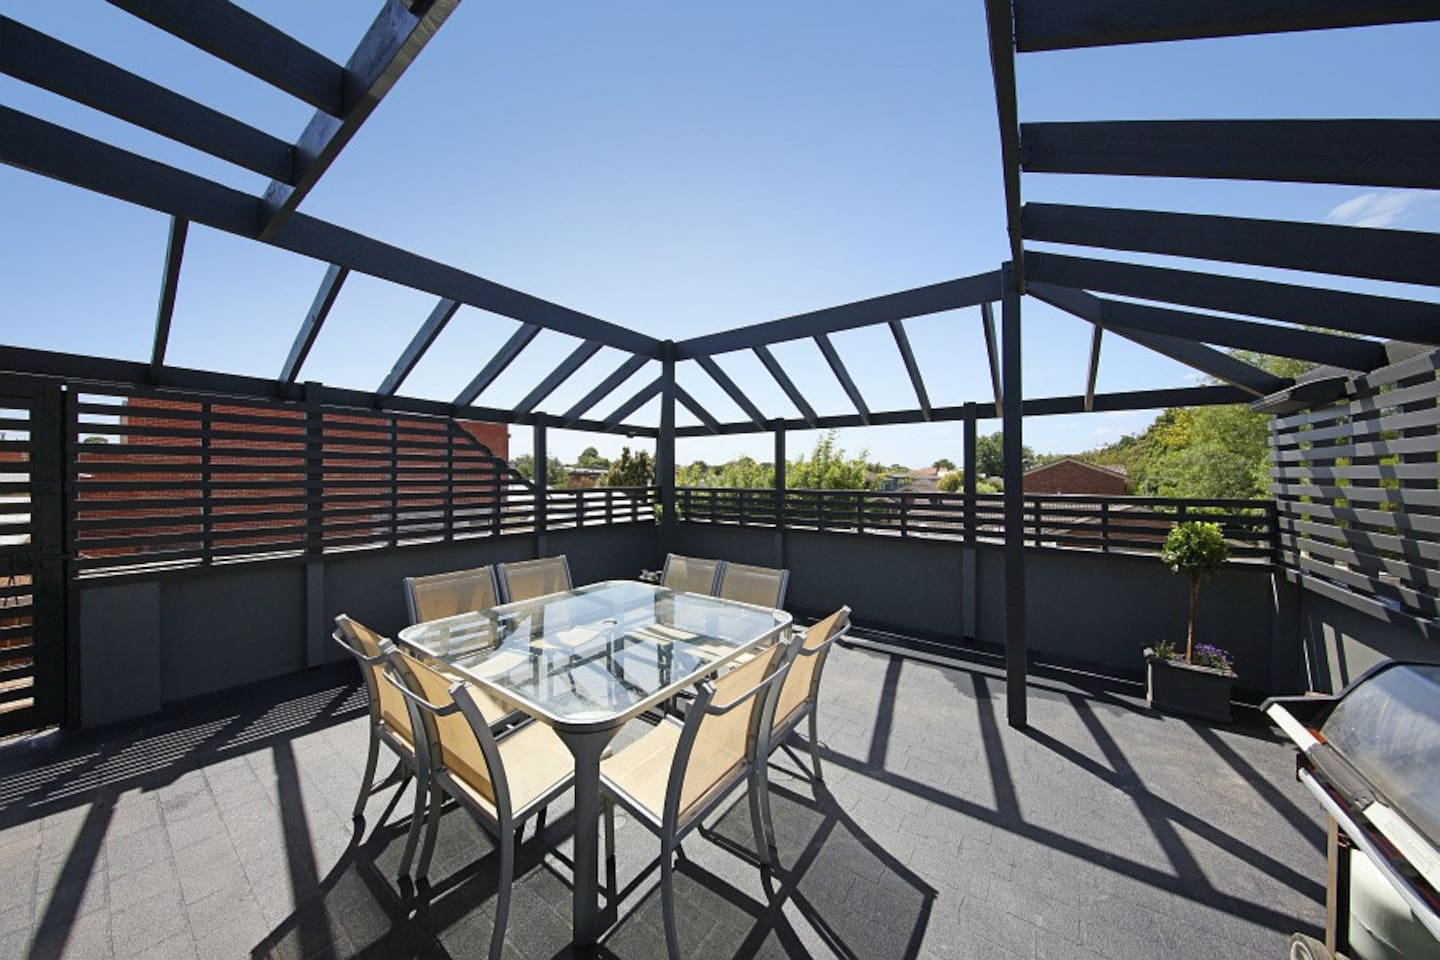 Private rooftop garden, complete with BBQ facilities